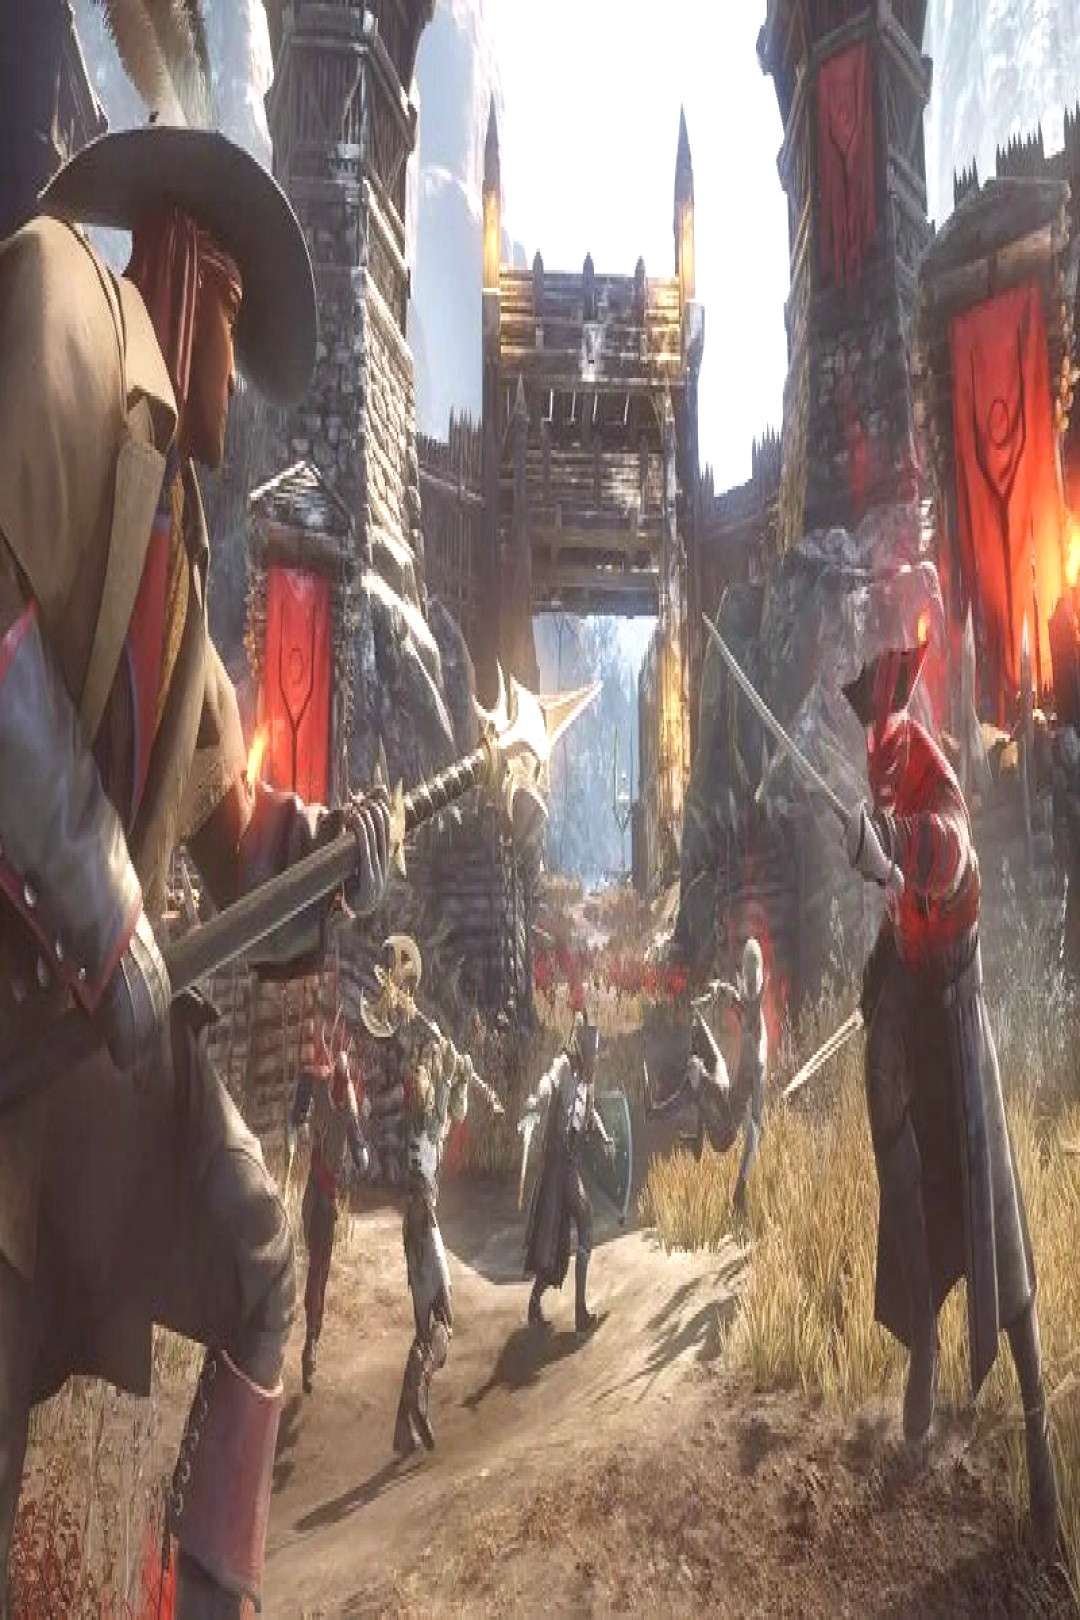 T New World Game Dev Explains Why Amazon Hasnt Considered Consoles Amazon Game Studios recently u